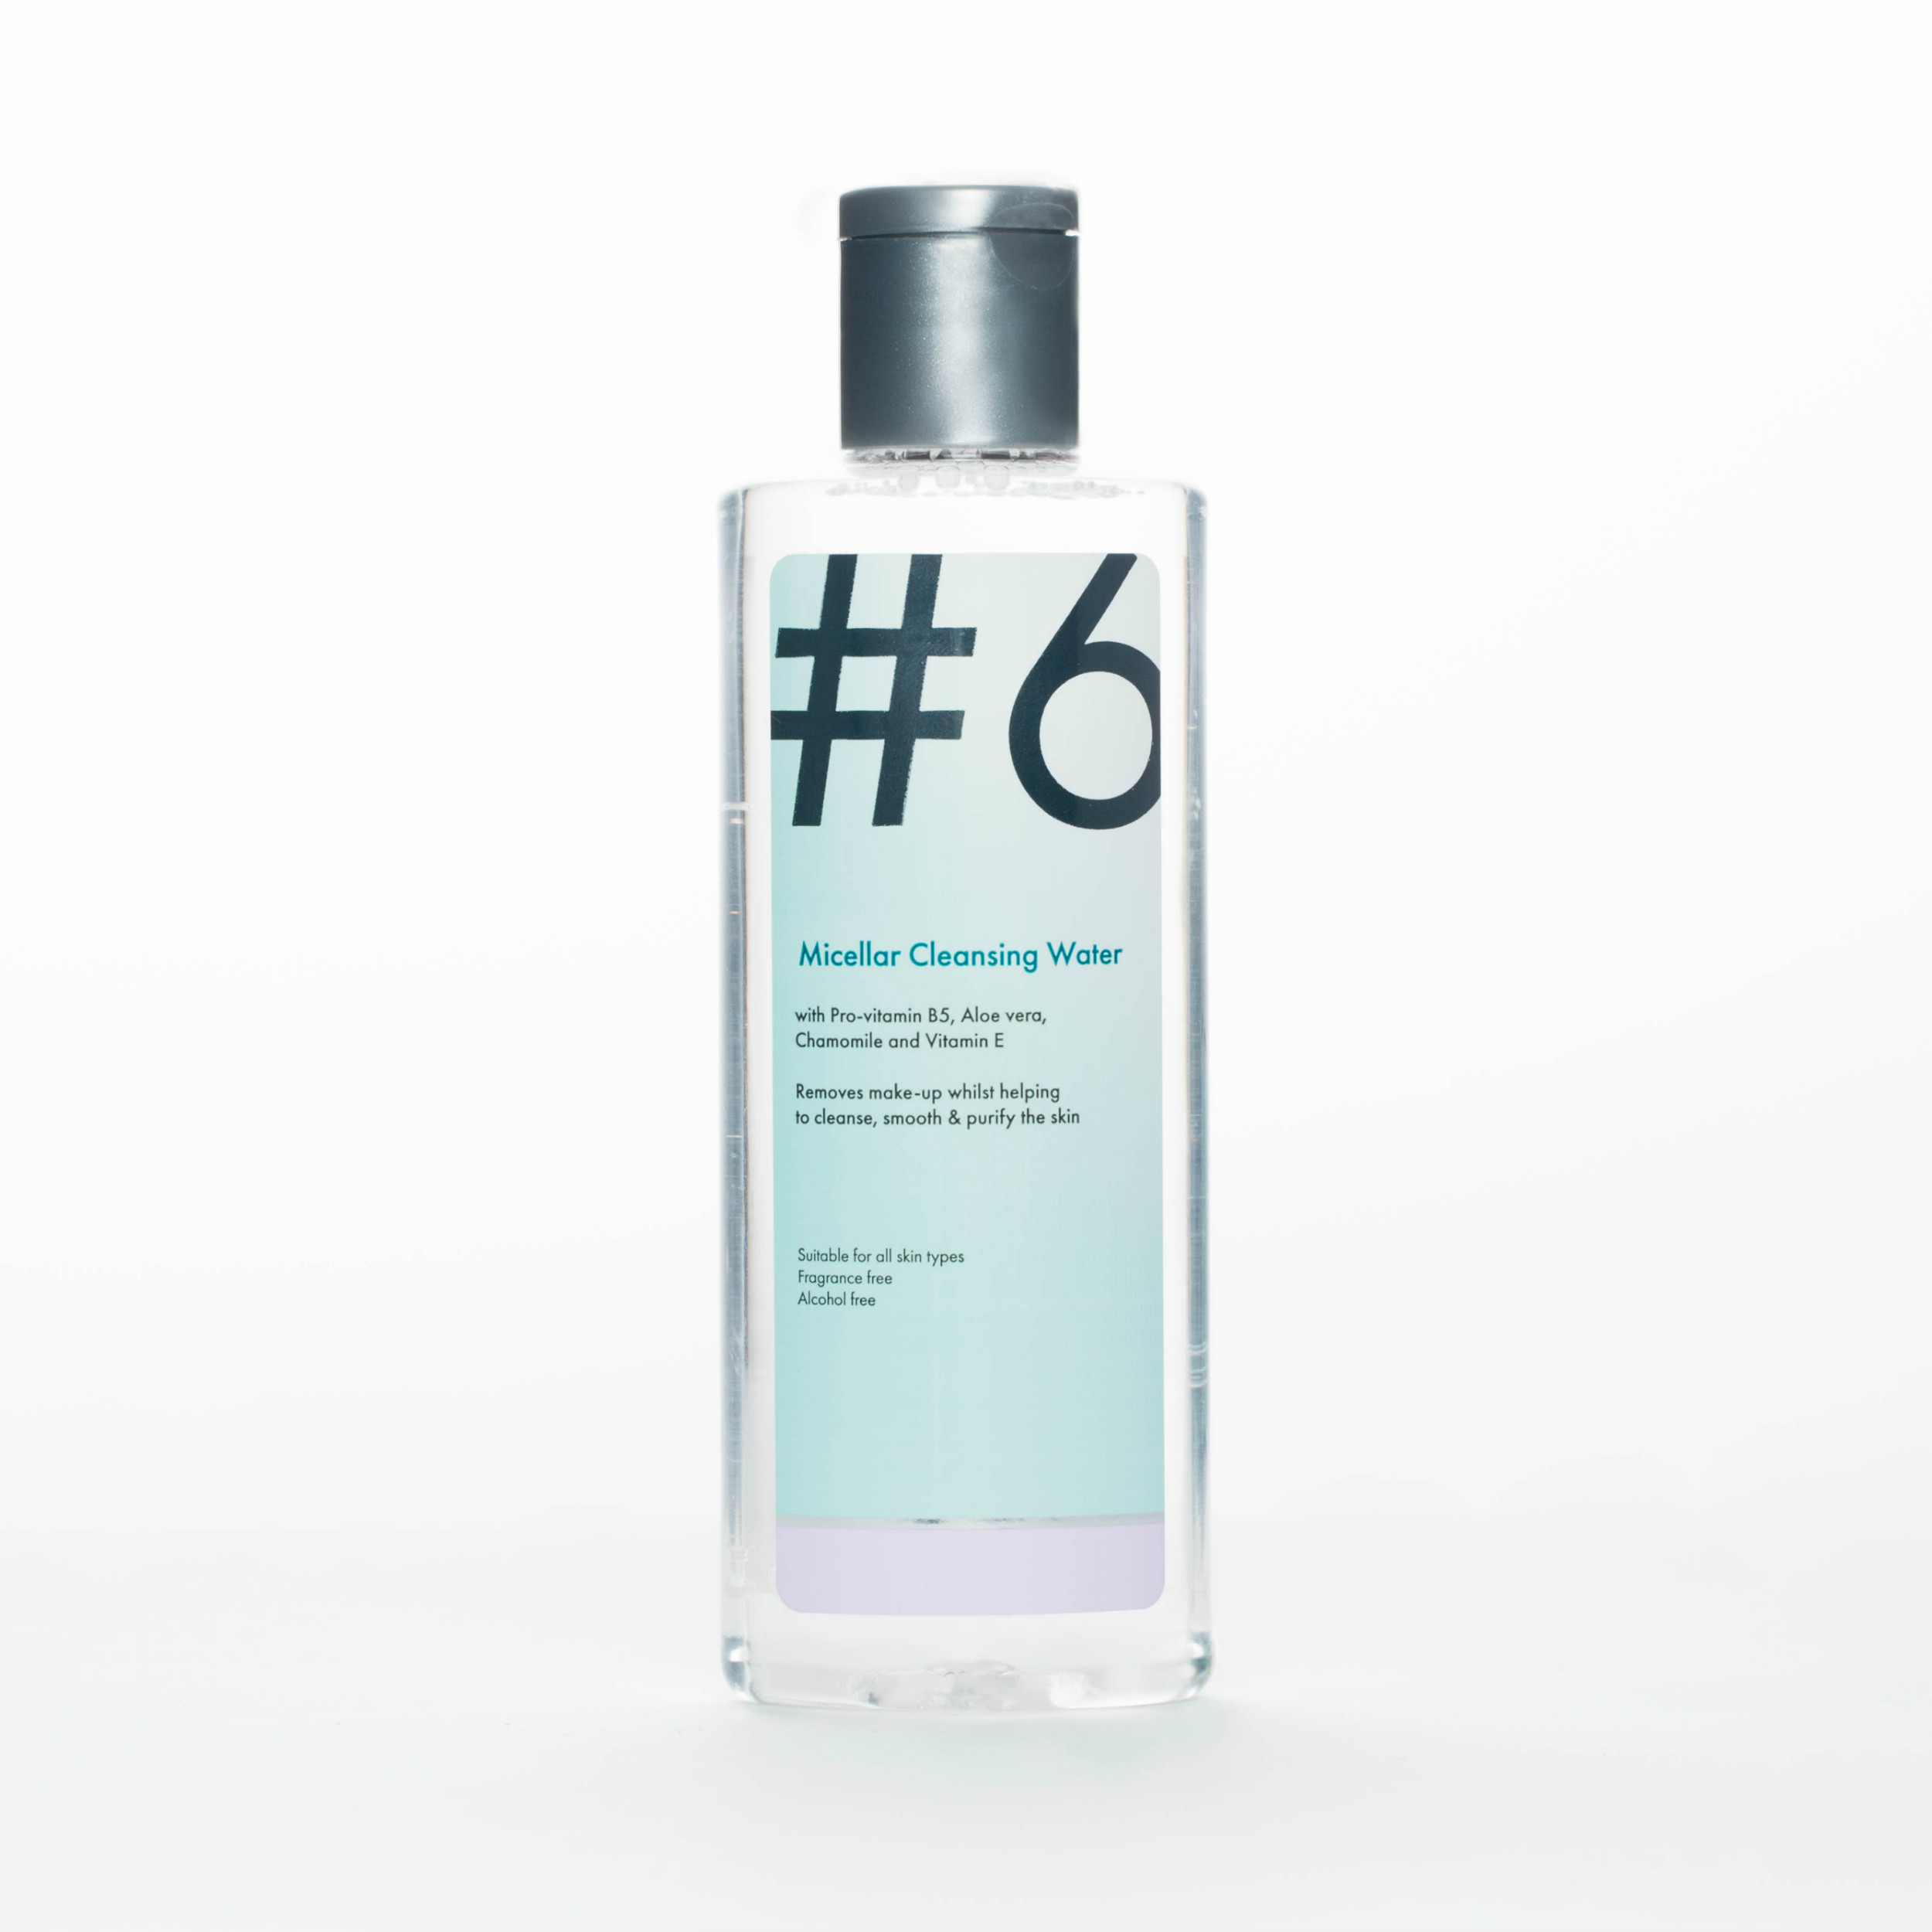 #6 Micellar cleansing water - With Pro-vitamin B5, Aloe vera, Chamomile and Vitamin E Removes make-up whilst helping to cleanse, smooth & purify the skin.Our gentle #6 Micellar Cleansing Water is perfect for sensitive skin. It uses tiny micelles which attract dirt and make up like a magnet, removing them in one easy step. Containing no harsh detergents or chemicals it will leave your skin cleansed, nourished and hydrated.Suitable for all skin types including sensitive. Fragrance Free. Alcohol free. Suitable for Vegans. Made in the UK.